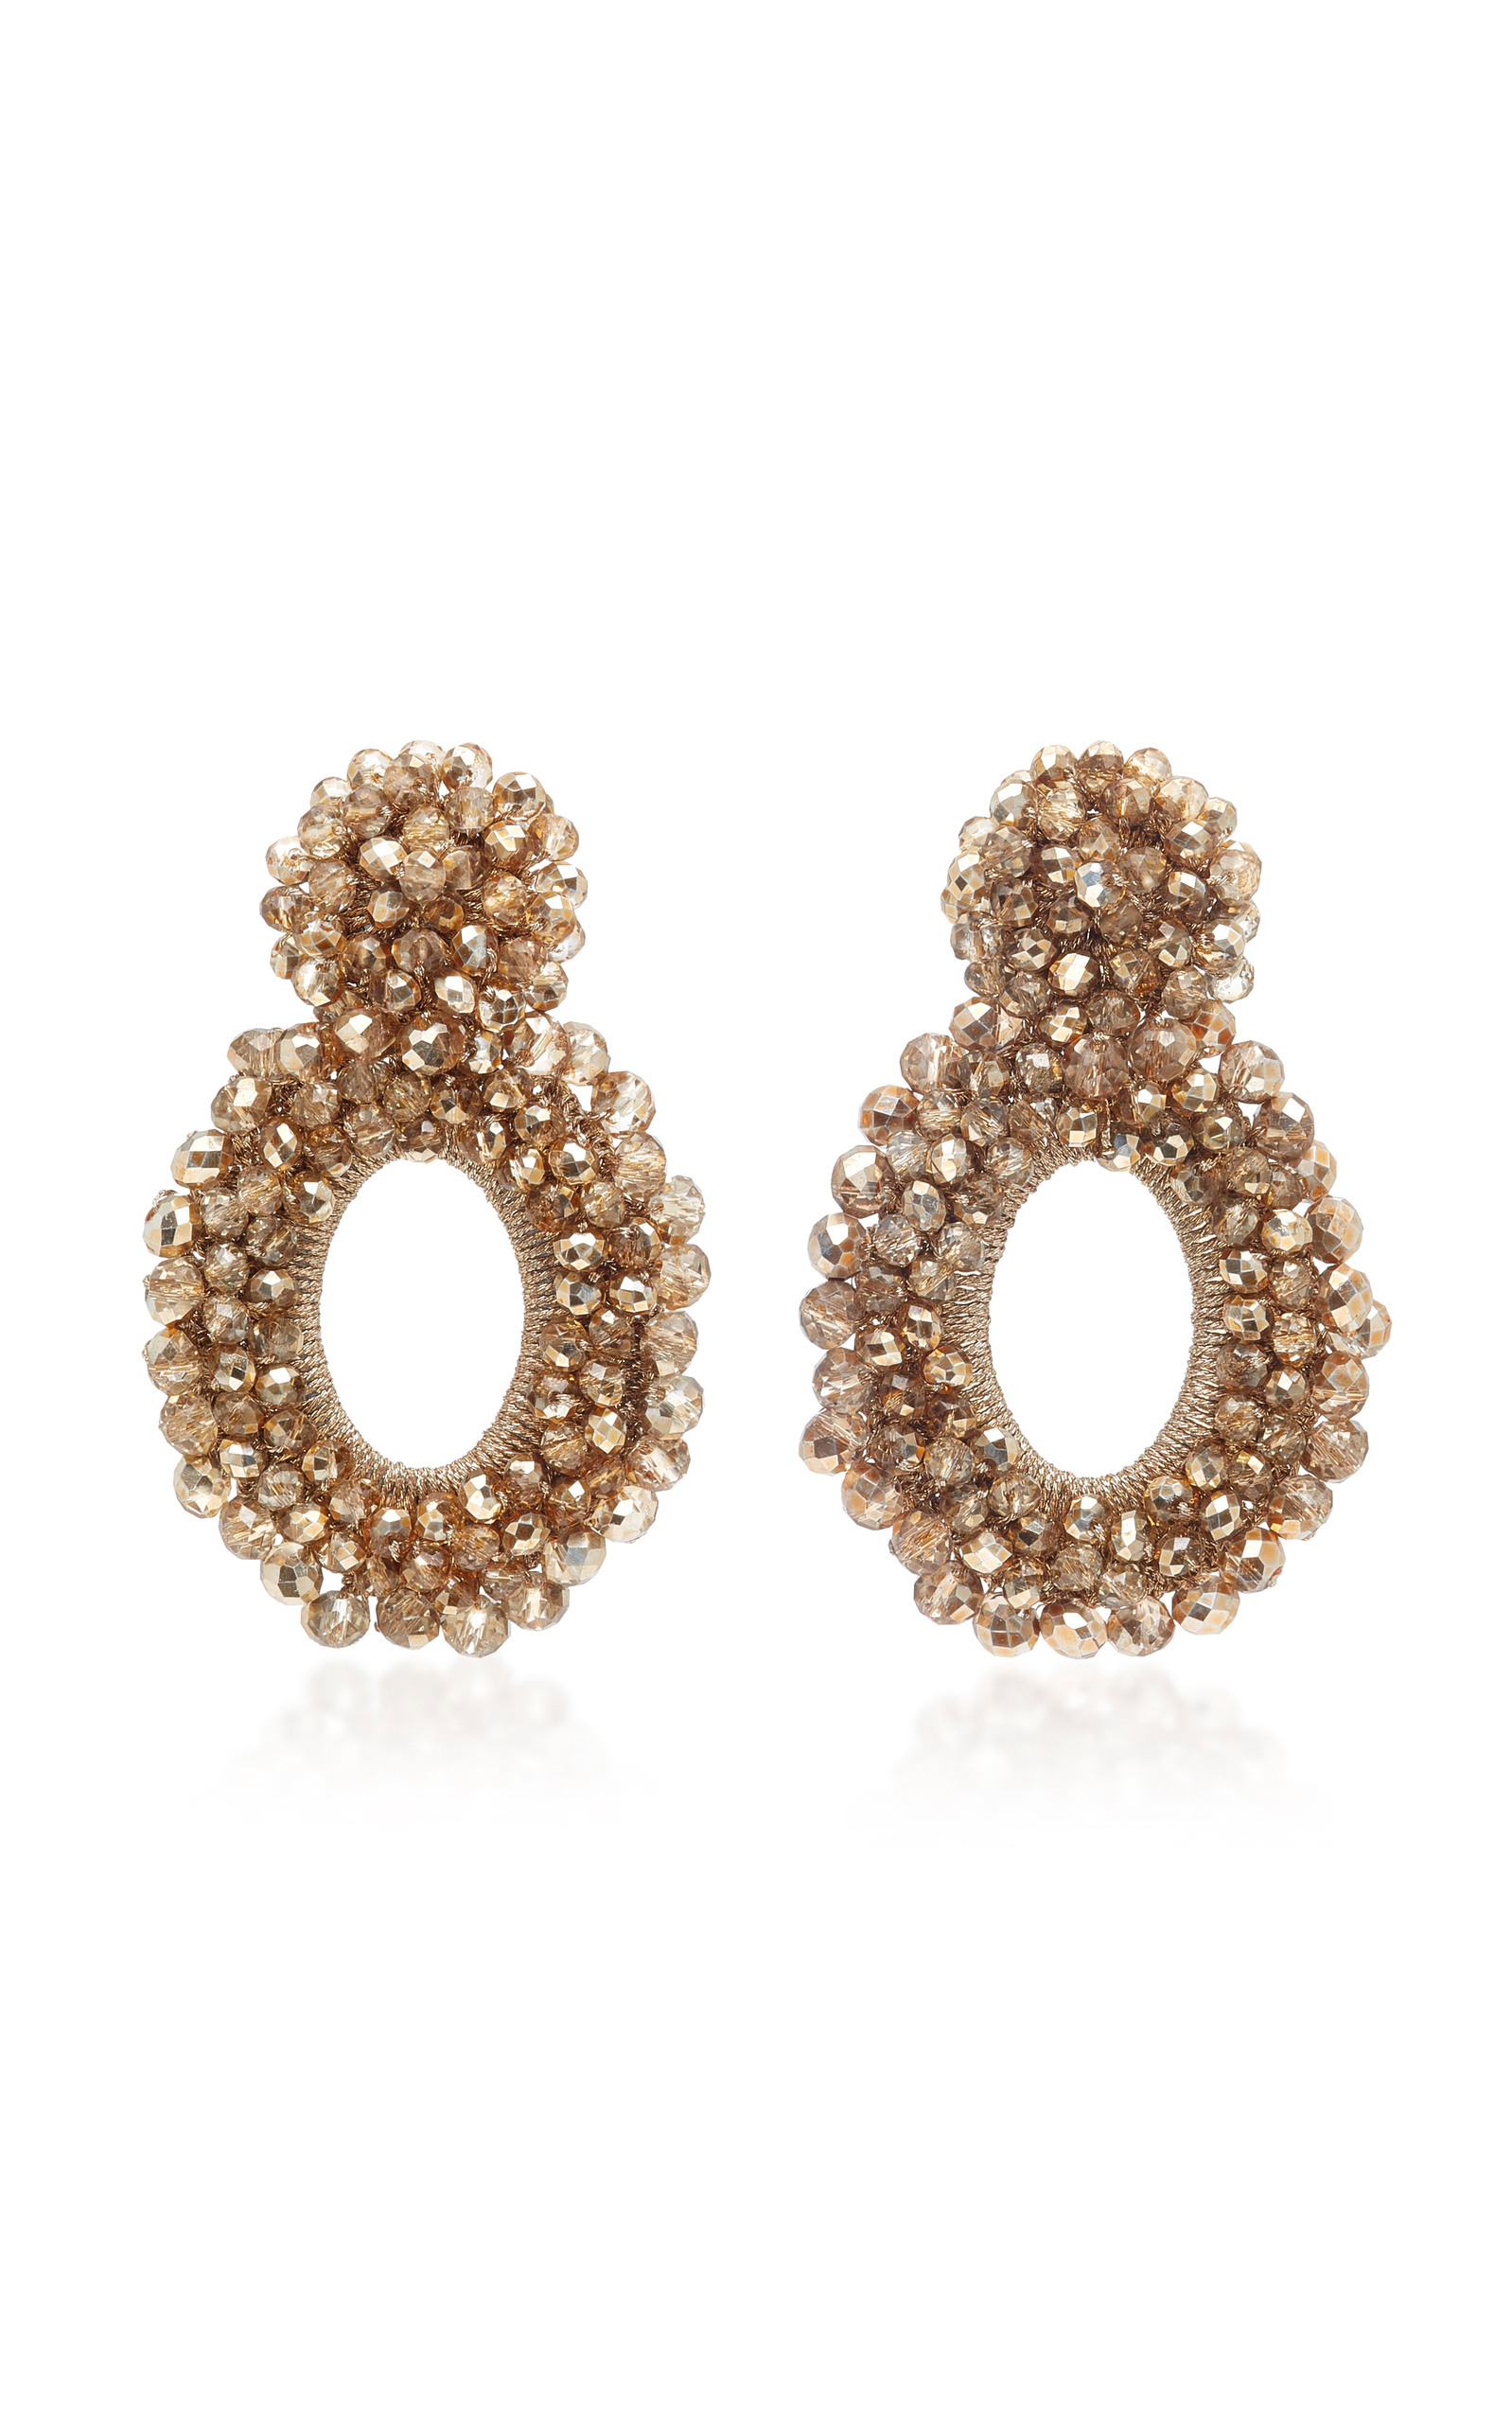 Golden Chamber Primrose Earrings Bibi Marini 7SVzHr